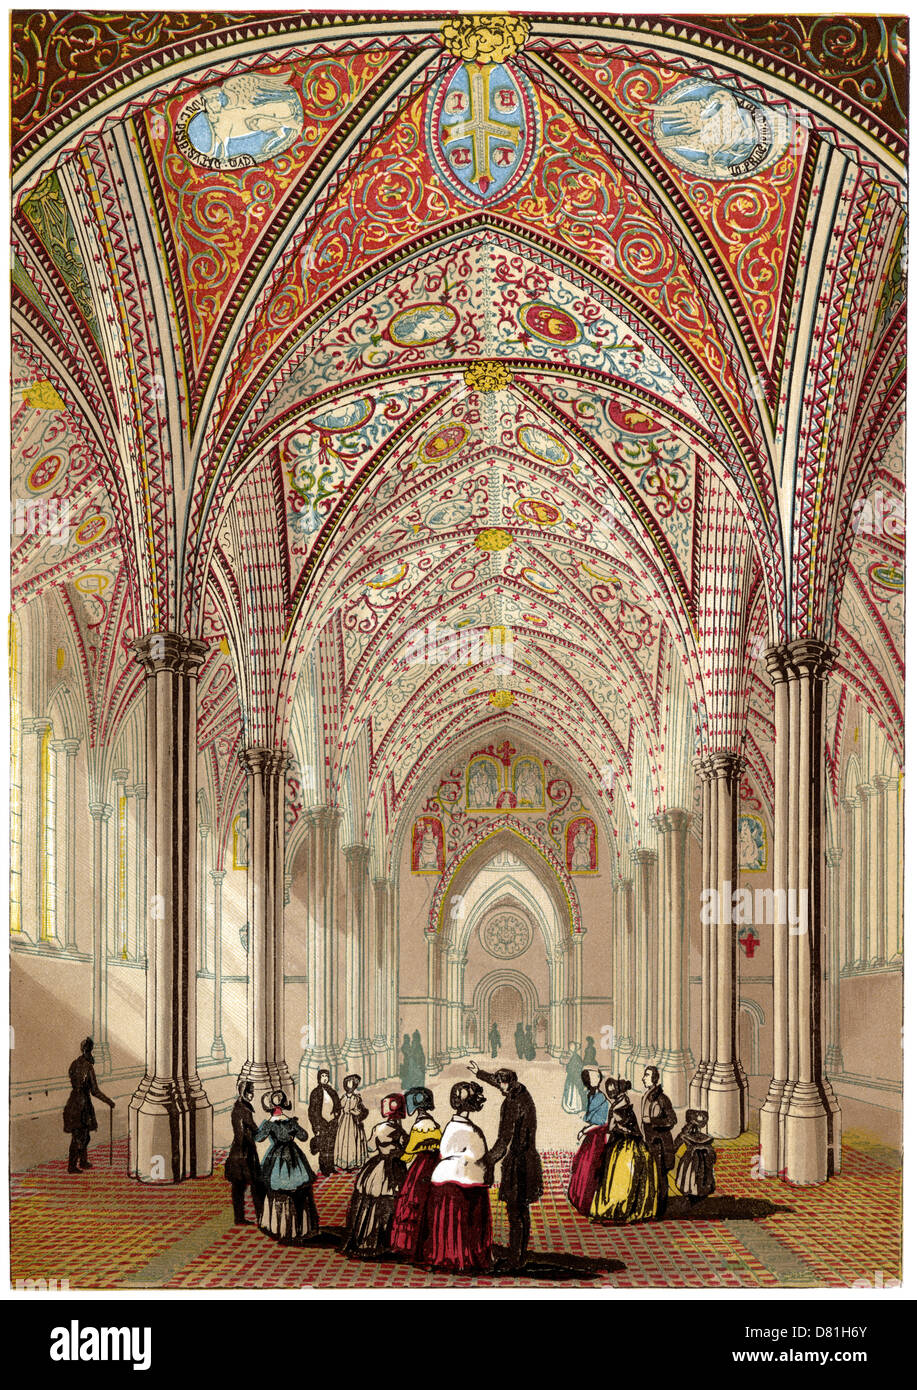 Interior of the Temple Church, London, Home of the Knights Templar. From an 1840s coloured engraving. - Stock Image